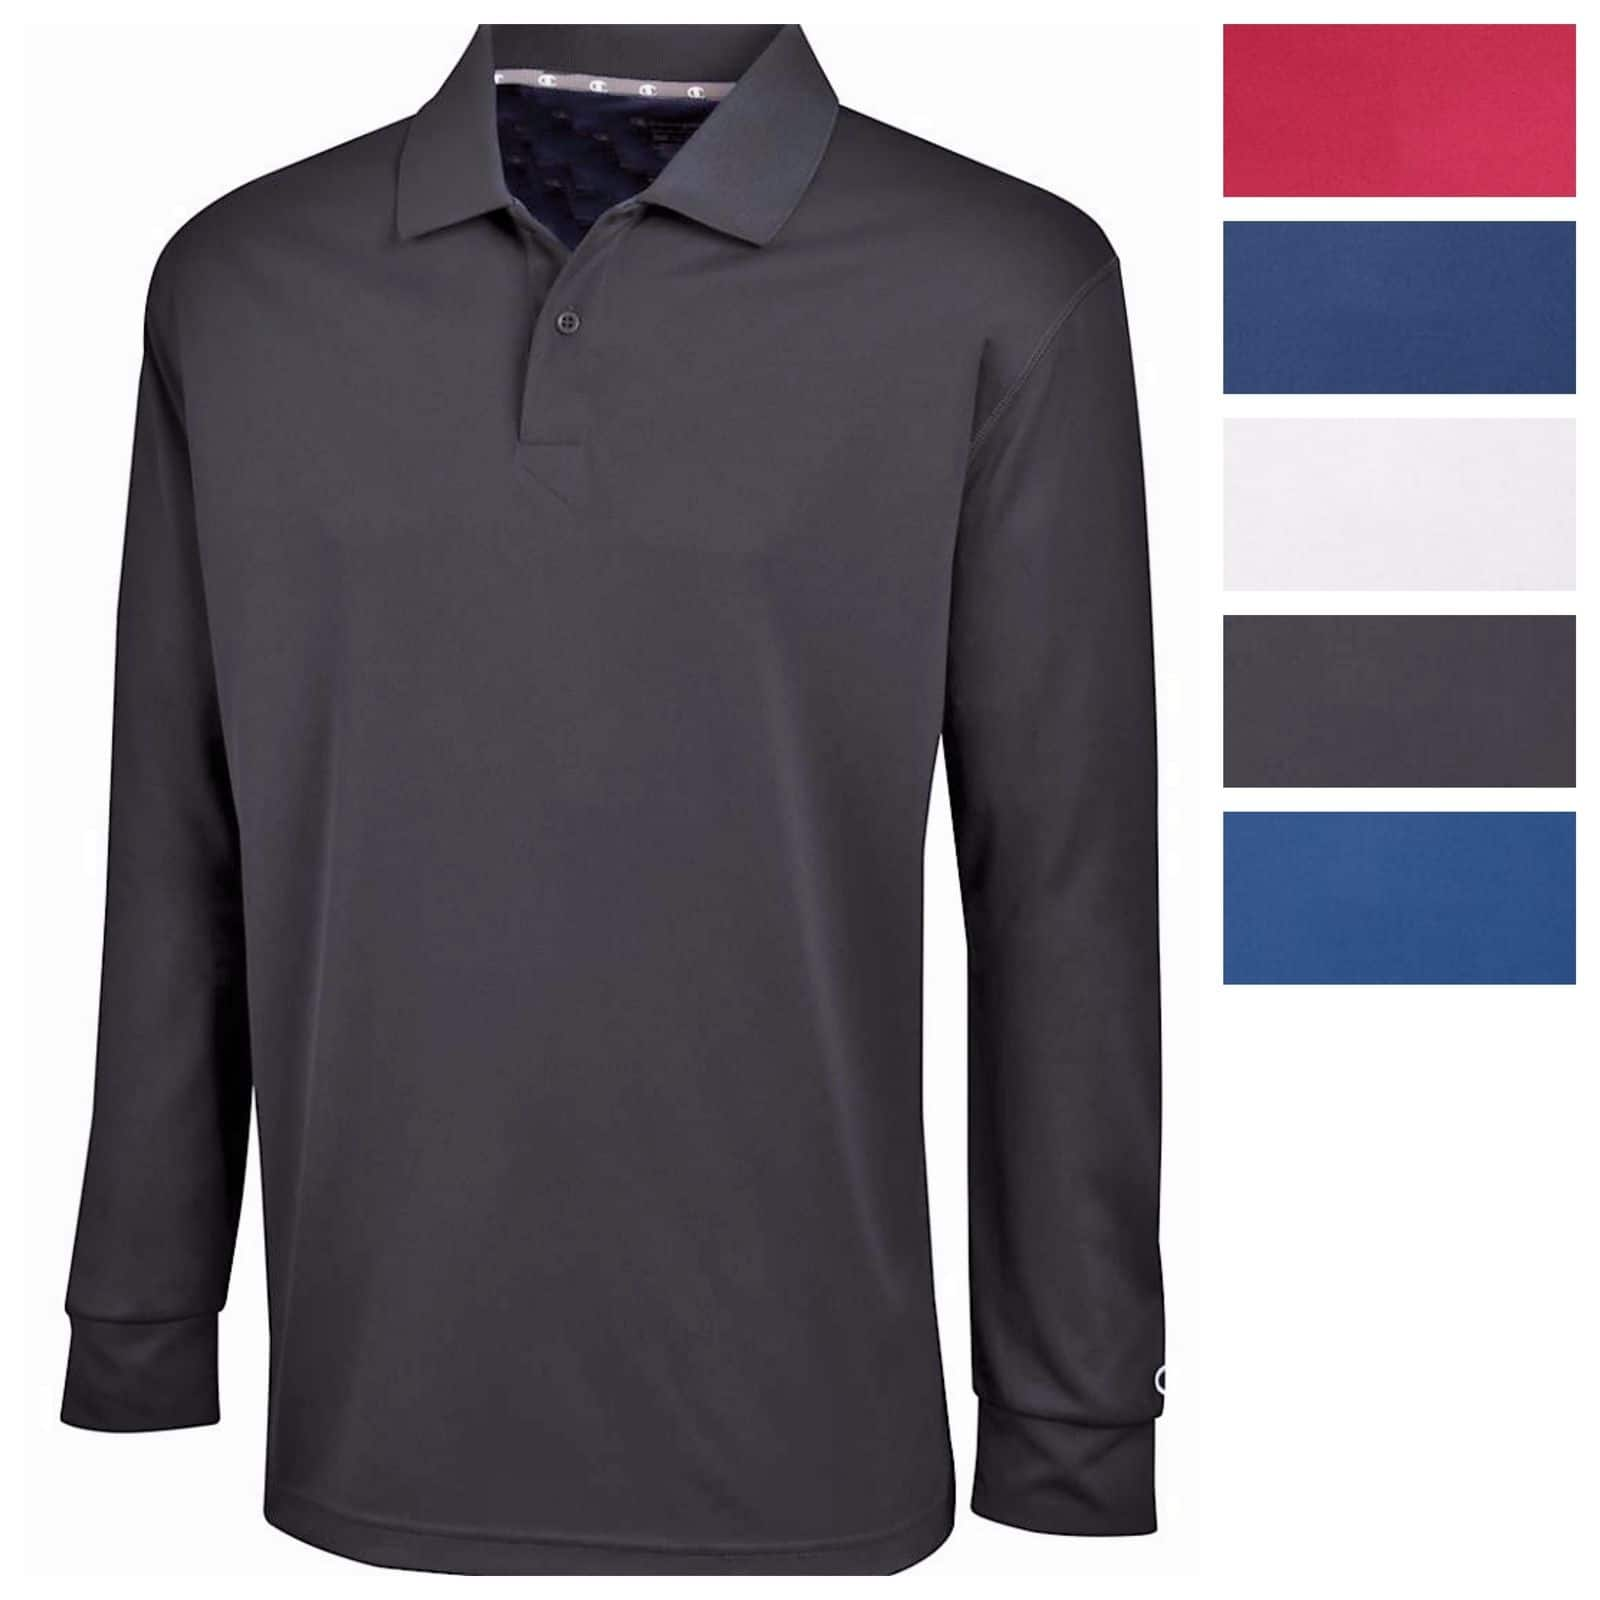 eBay: Men's Champion Ultimate Double Dry Long Sleeve Polo - $12.99 Plus Free Shipping